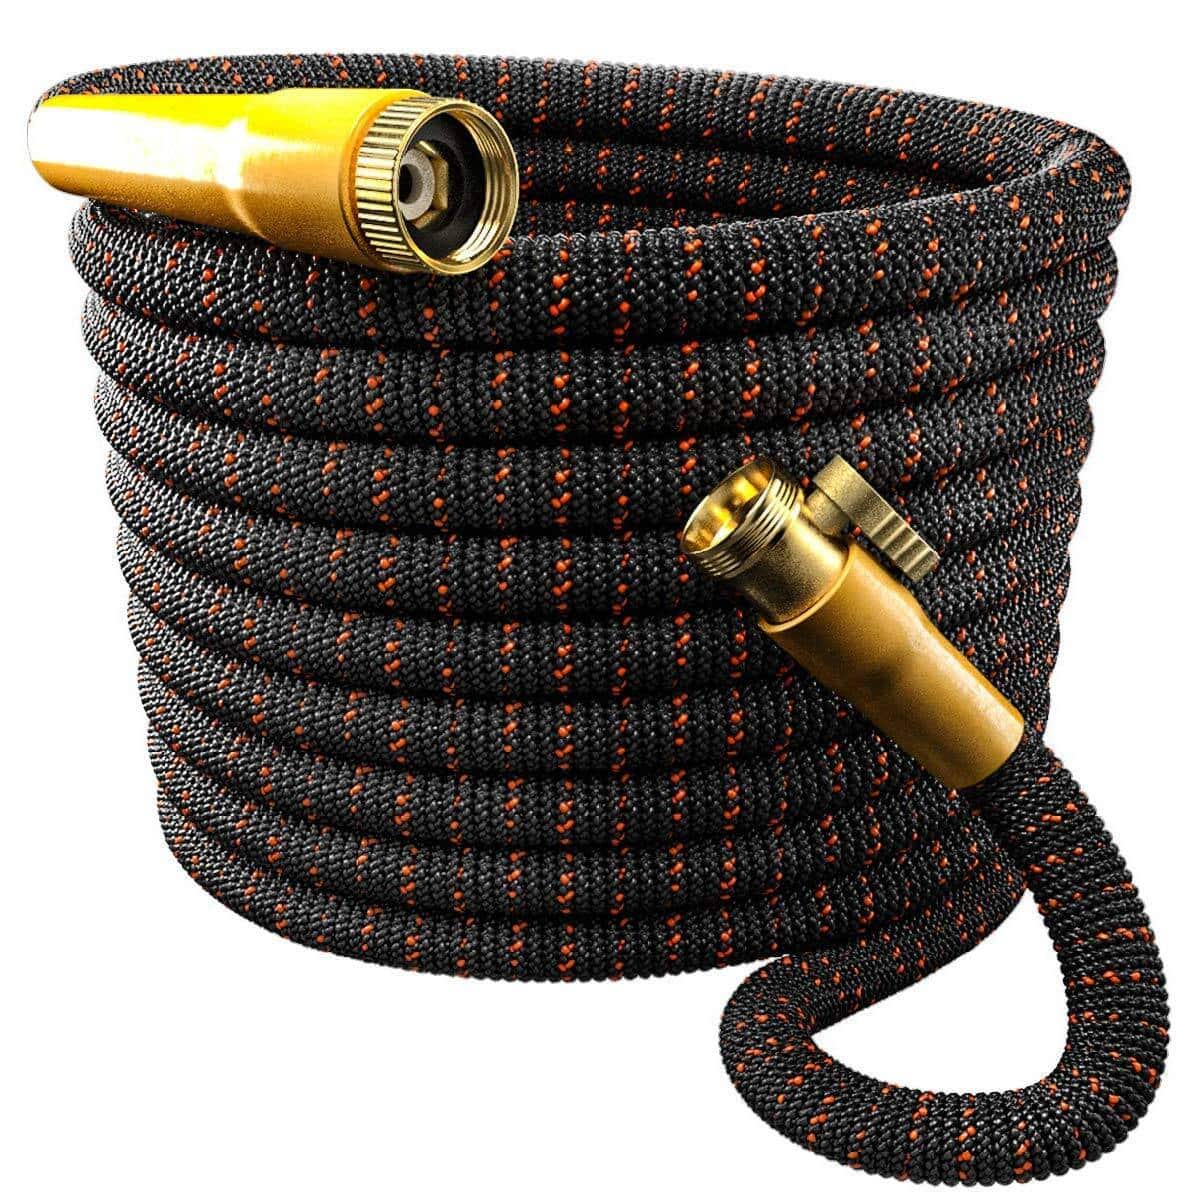 50' TBI Pro Expandable and Flexible Garden Hose